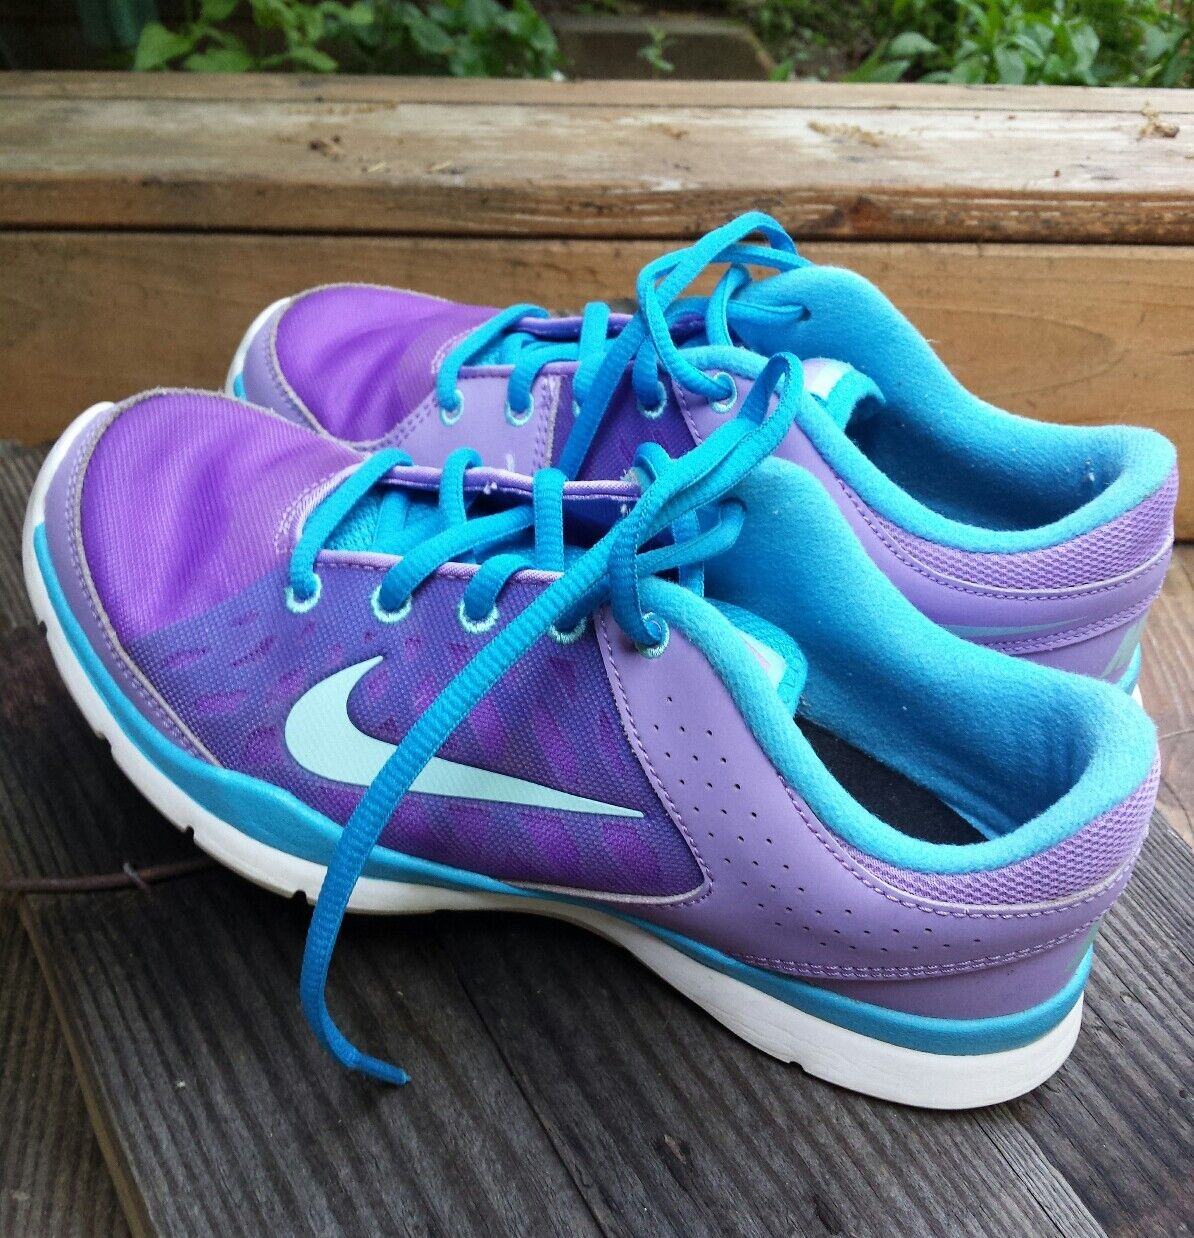 Nike Training Women's Purples Blue Swoosh Athletic Shoes Comfortable Cheap and beautiful fashion